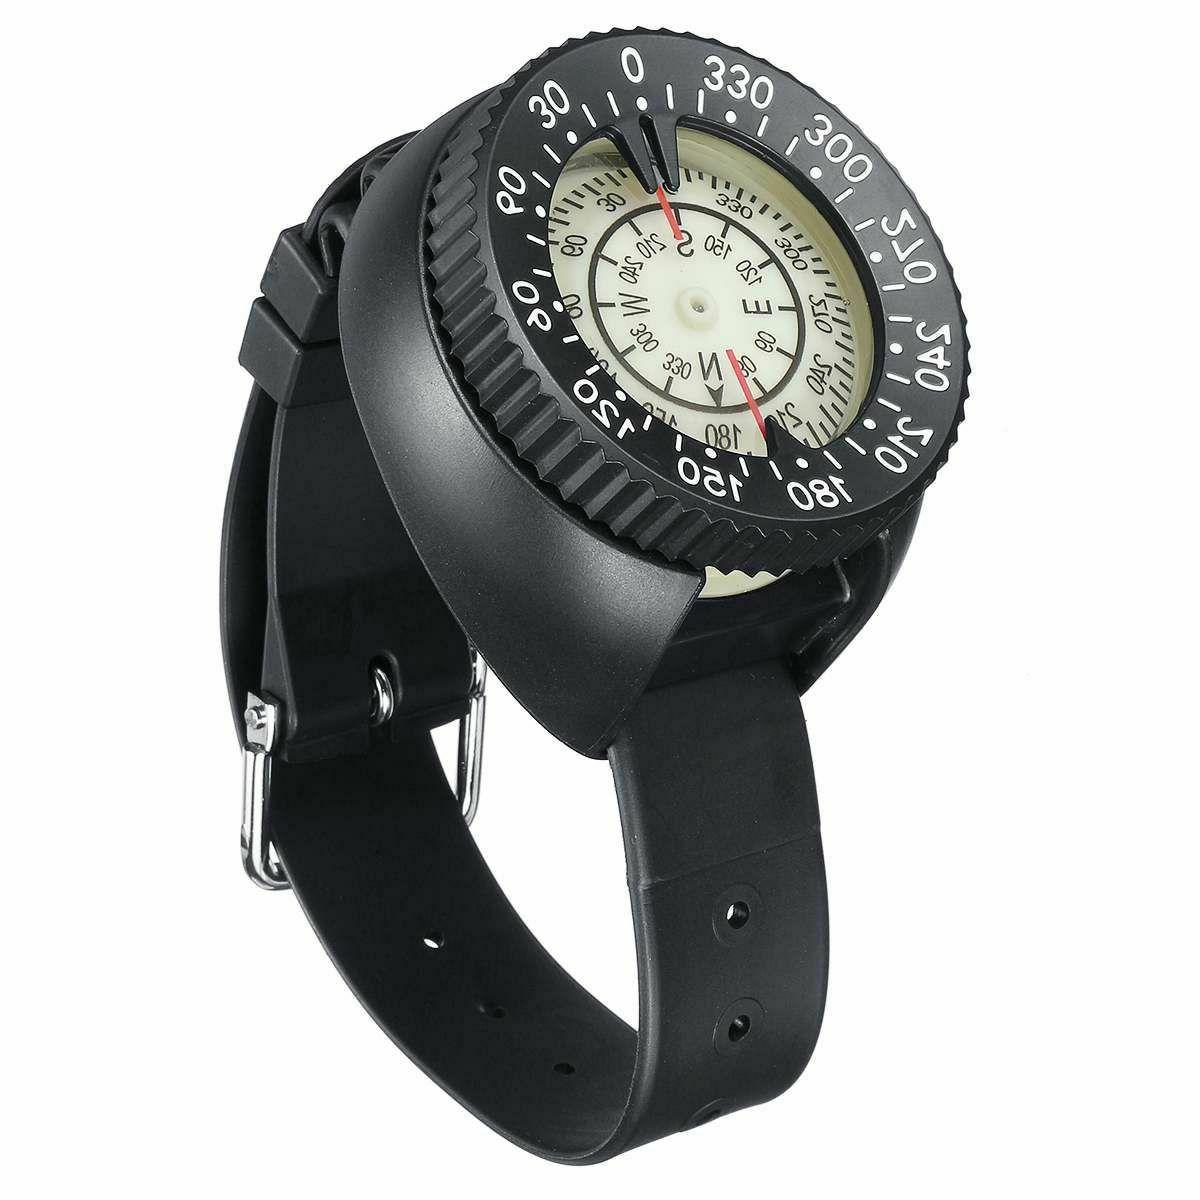 Diving Watch Compass Wrist Band Scuba Underwater Sports